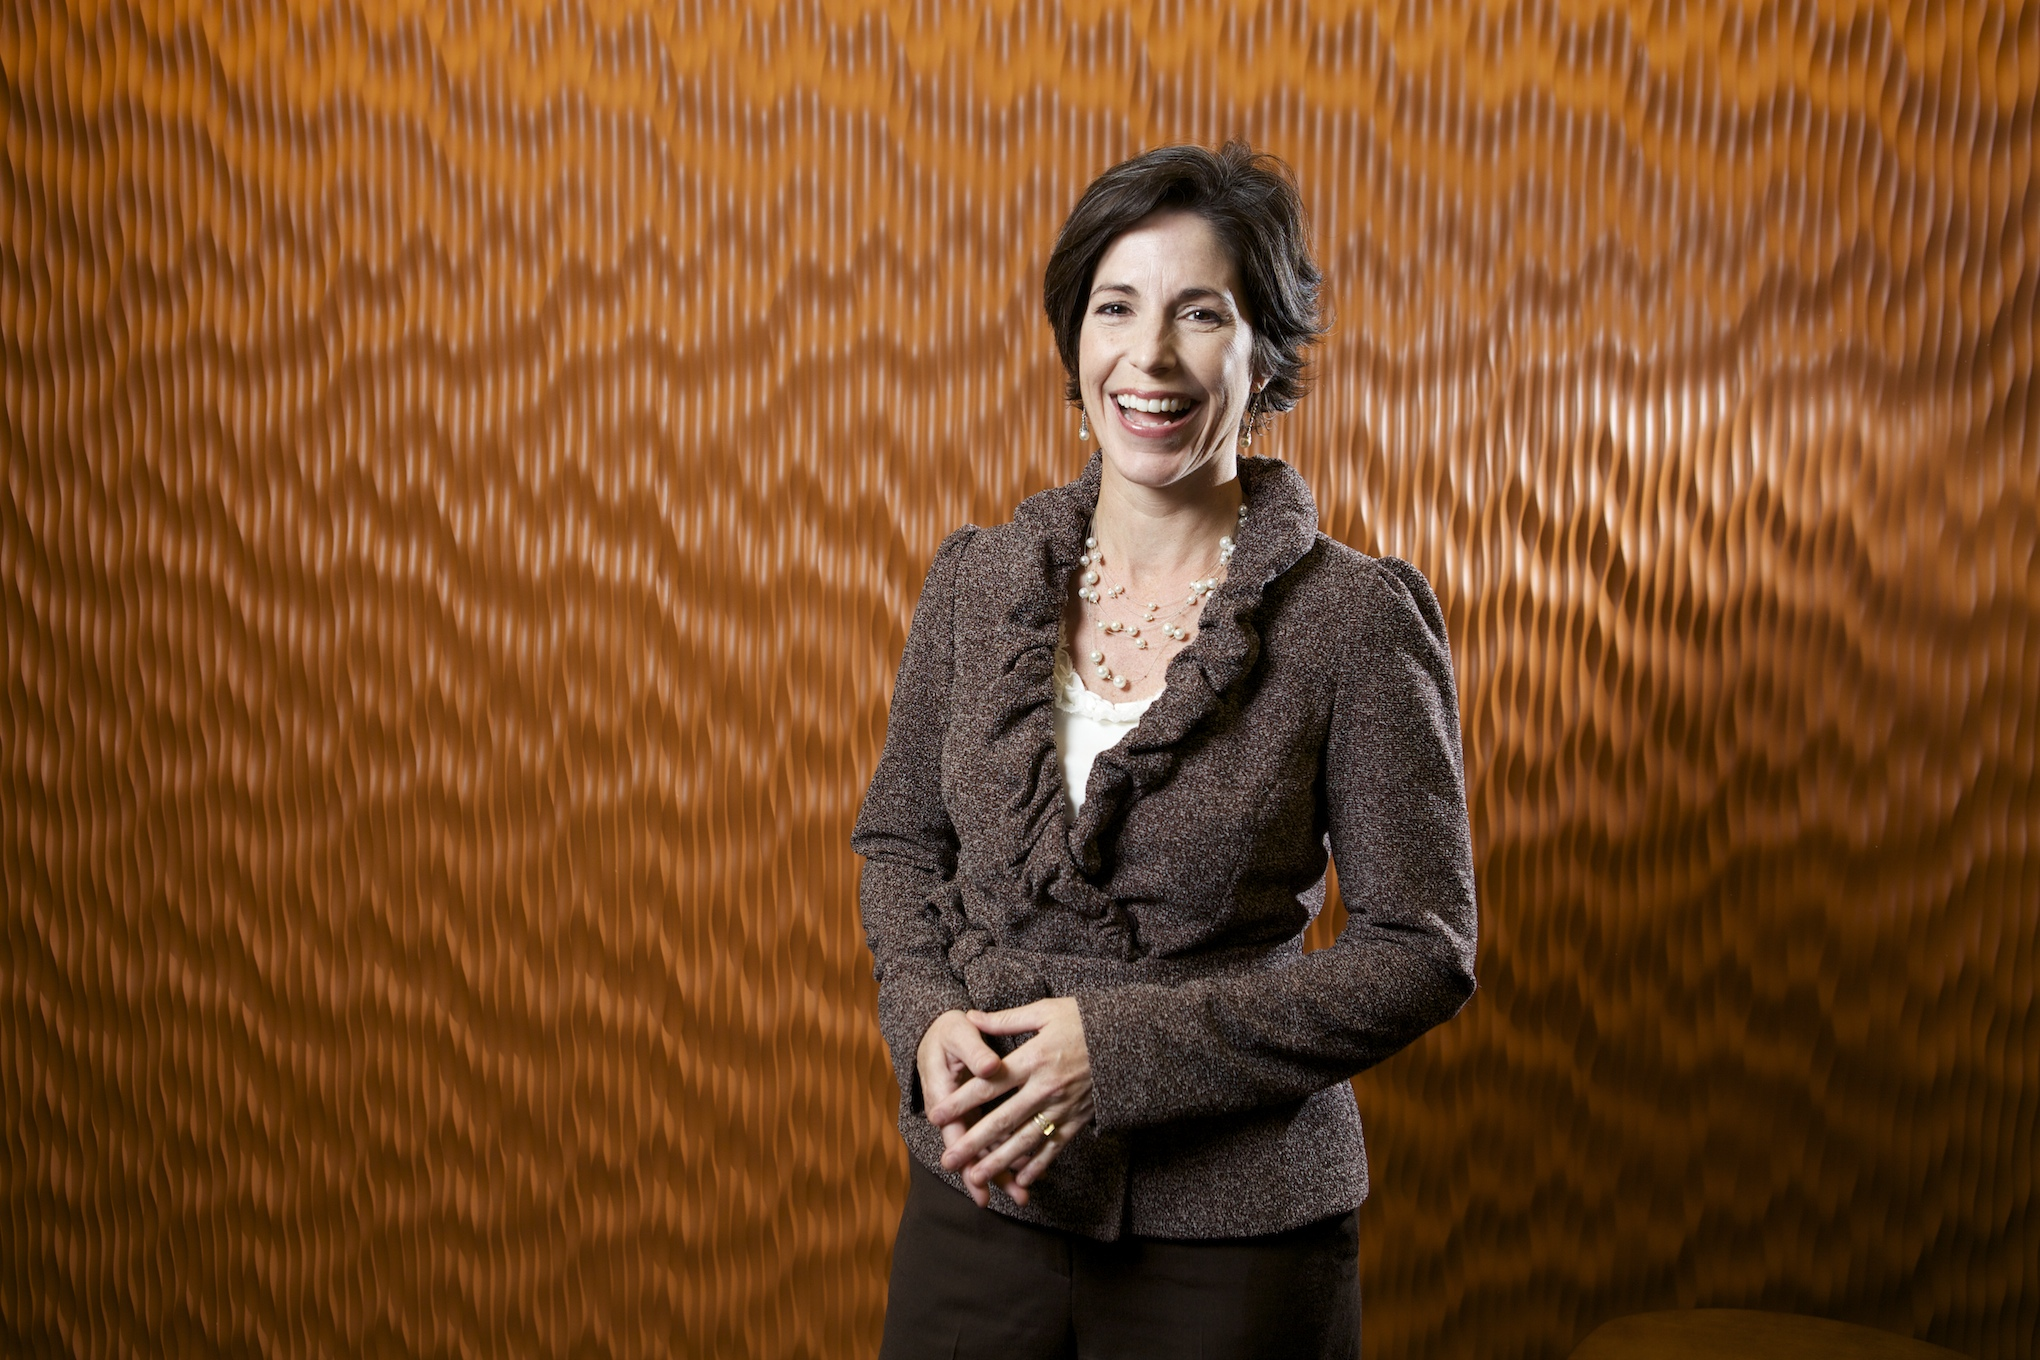 A female executive stands in her office for a corporate headshot.